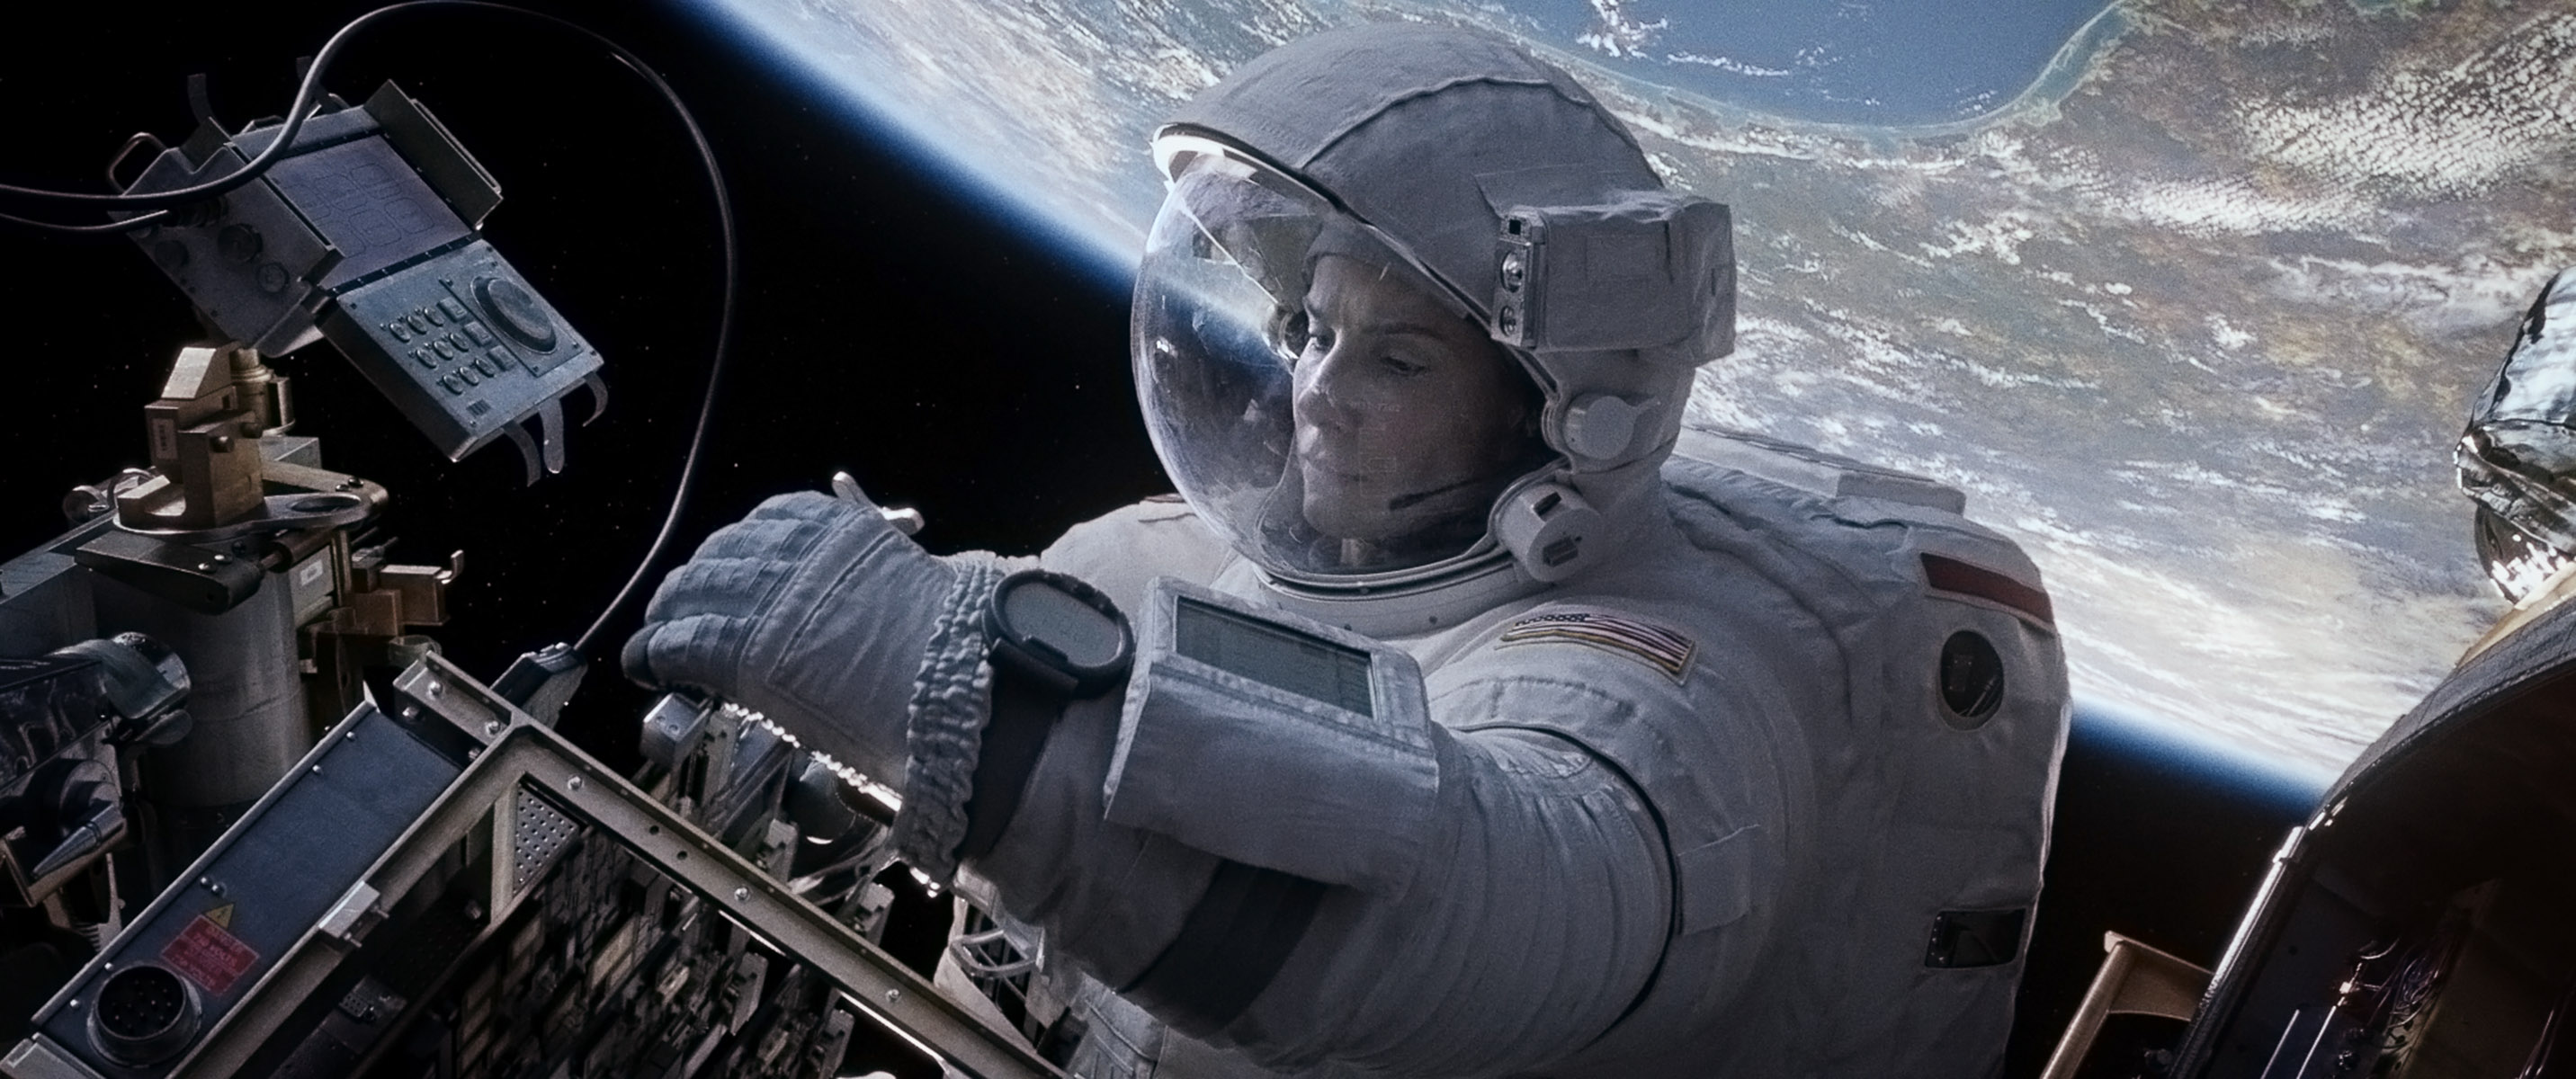 'Gravity' Captures 'Visceral' Nature of Spacewalks, Former Astronaut Says